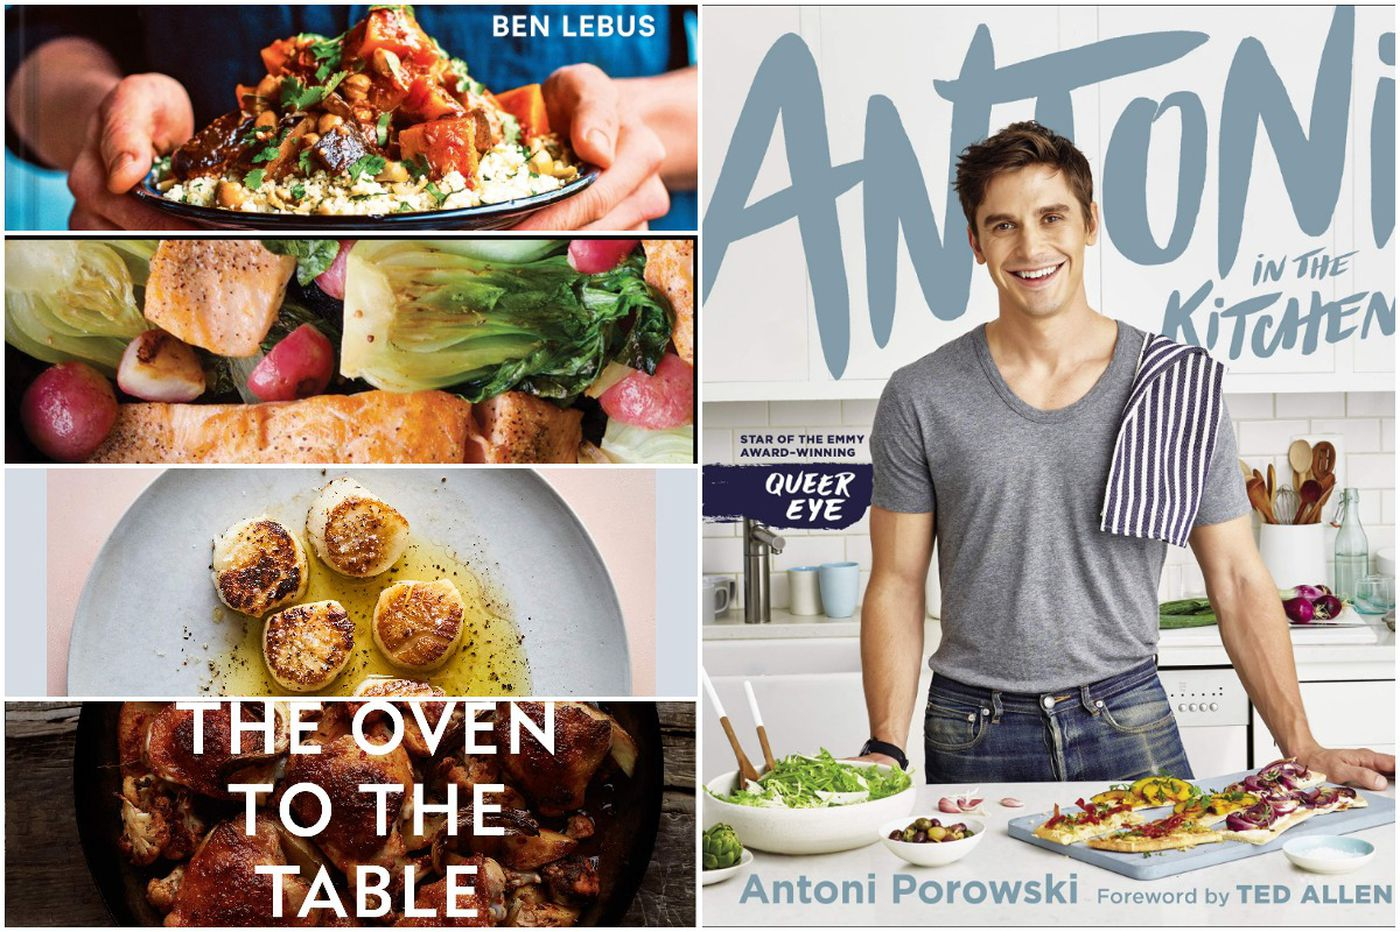 5 cookbooks for great weeknight dinners (including one from a 'Queer Eye' guy)